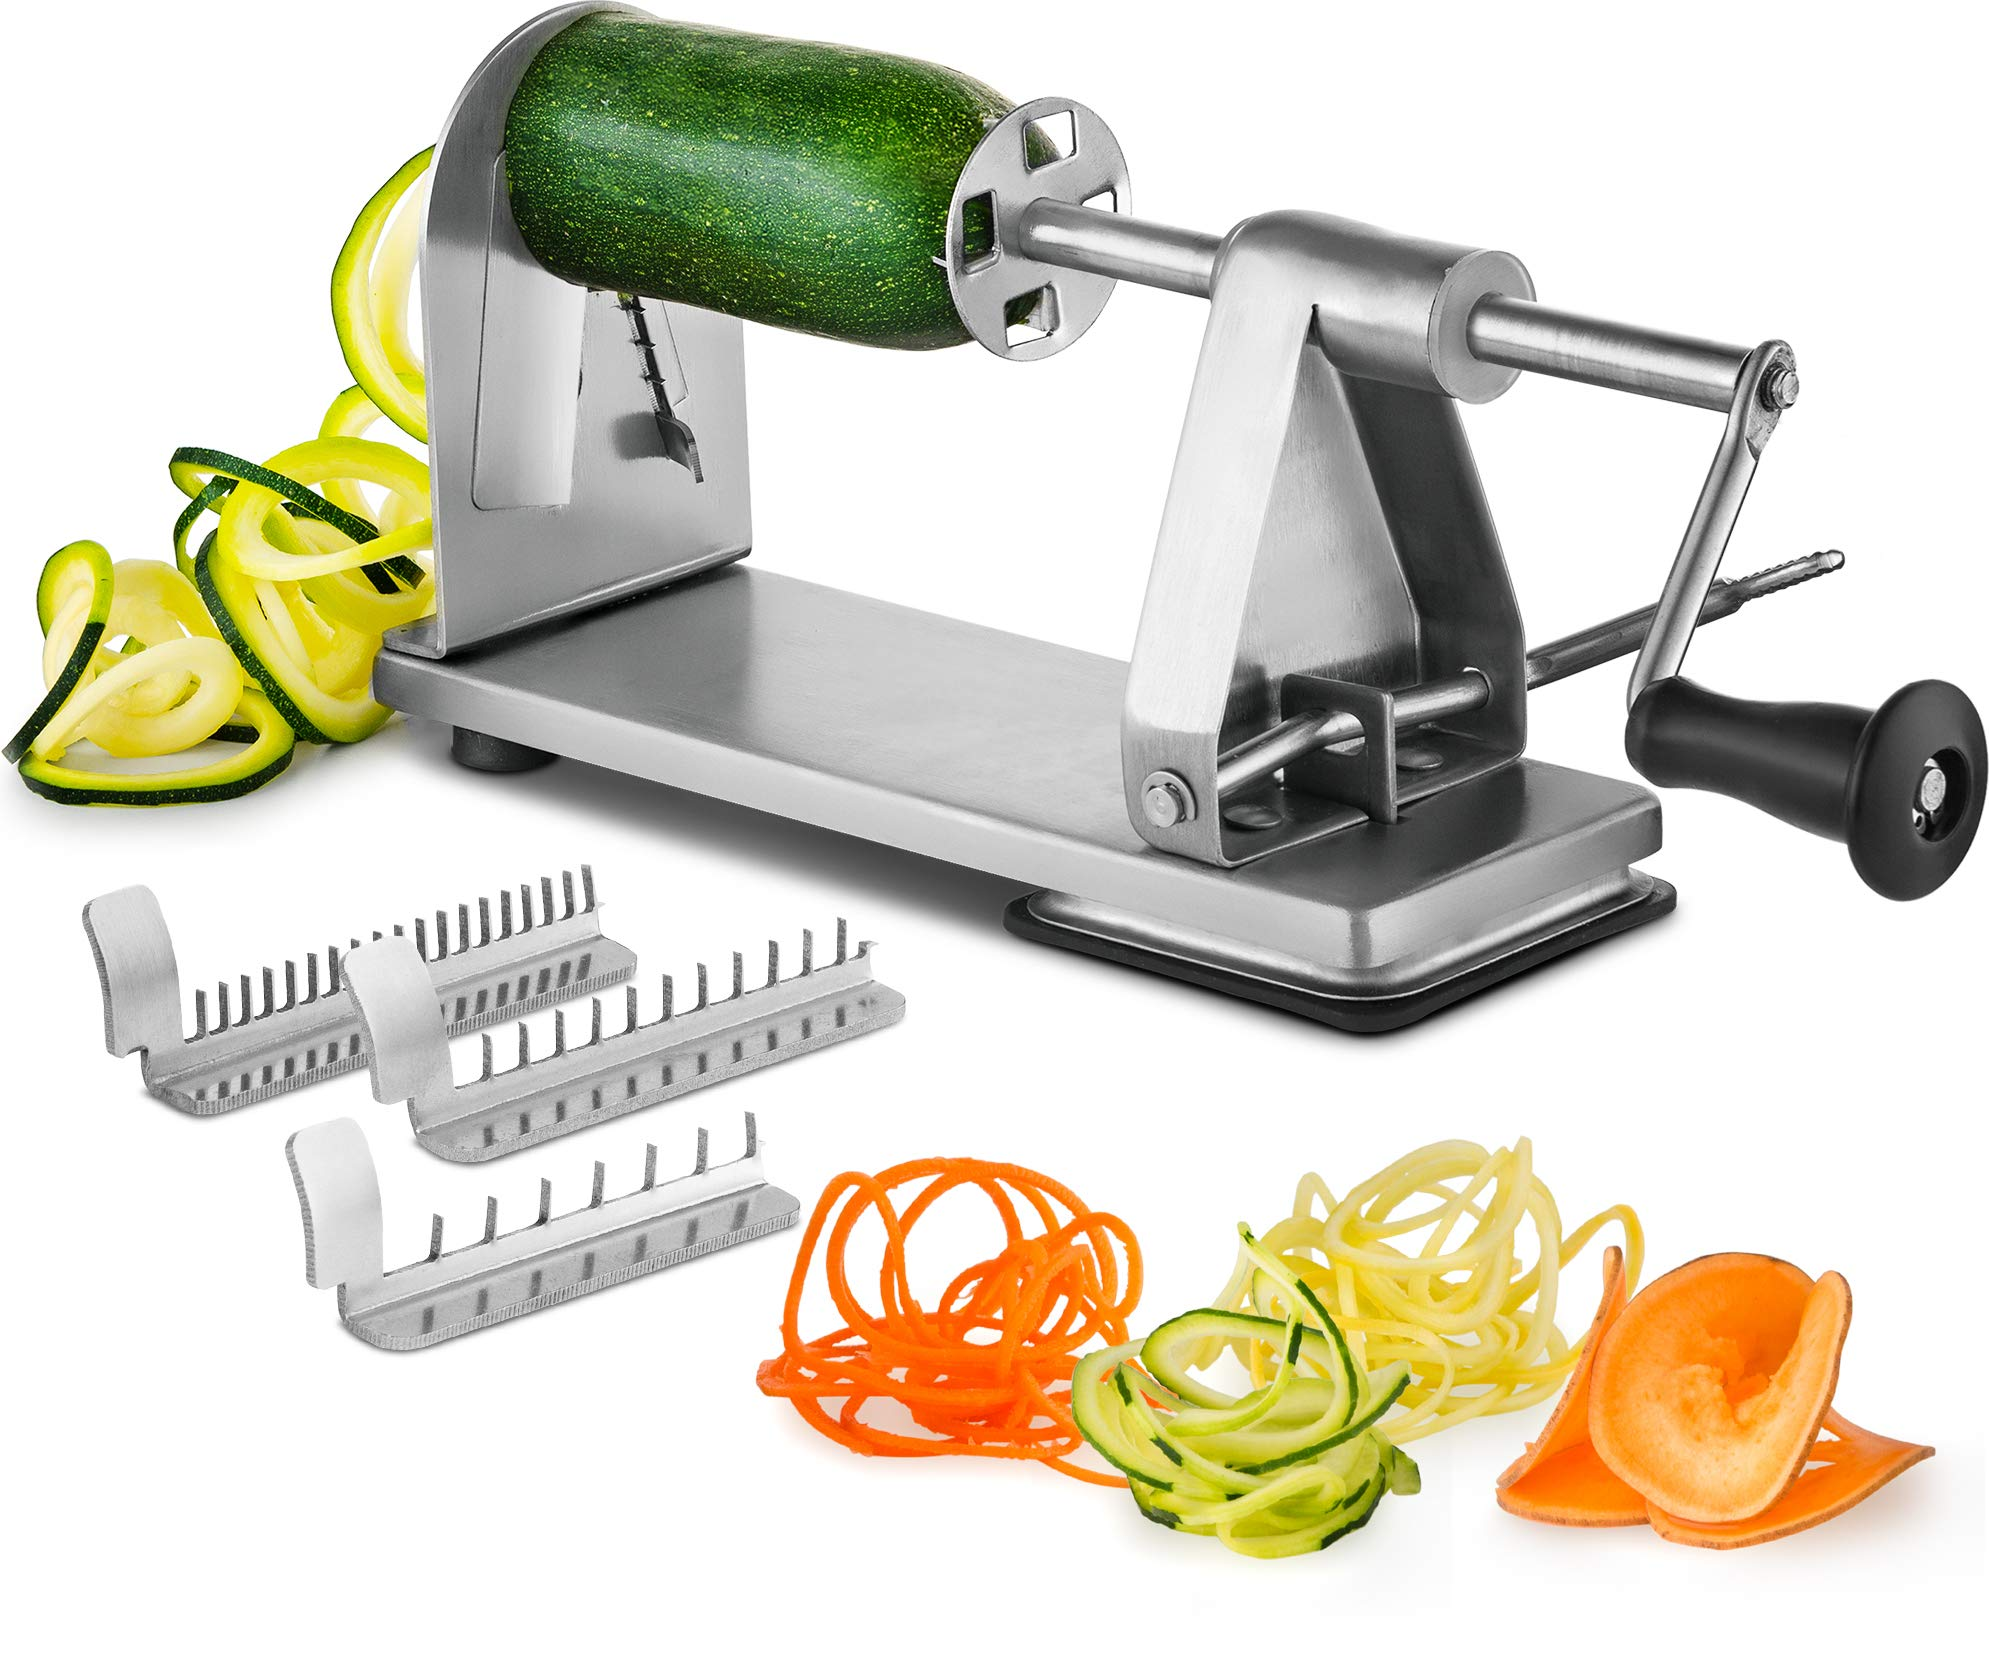 Stainless Vegetable Spiralizer Industrial Grade Restaurant Quality